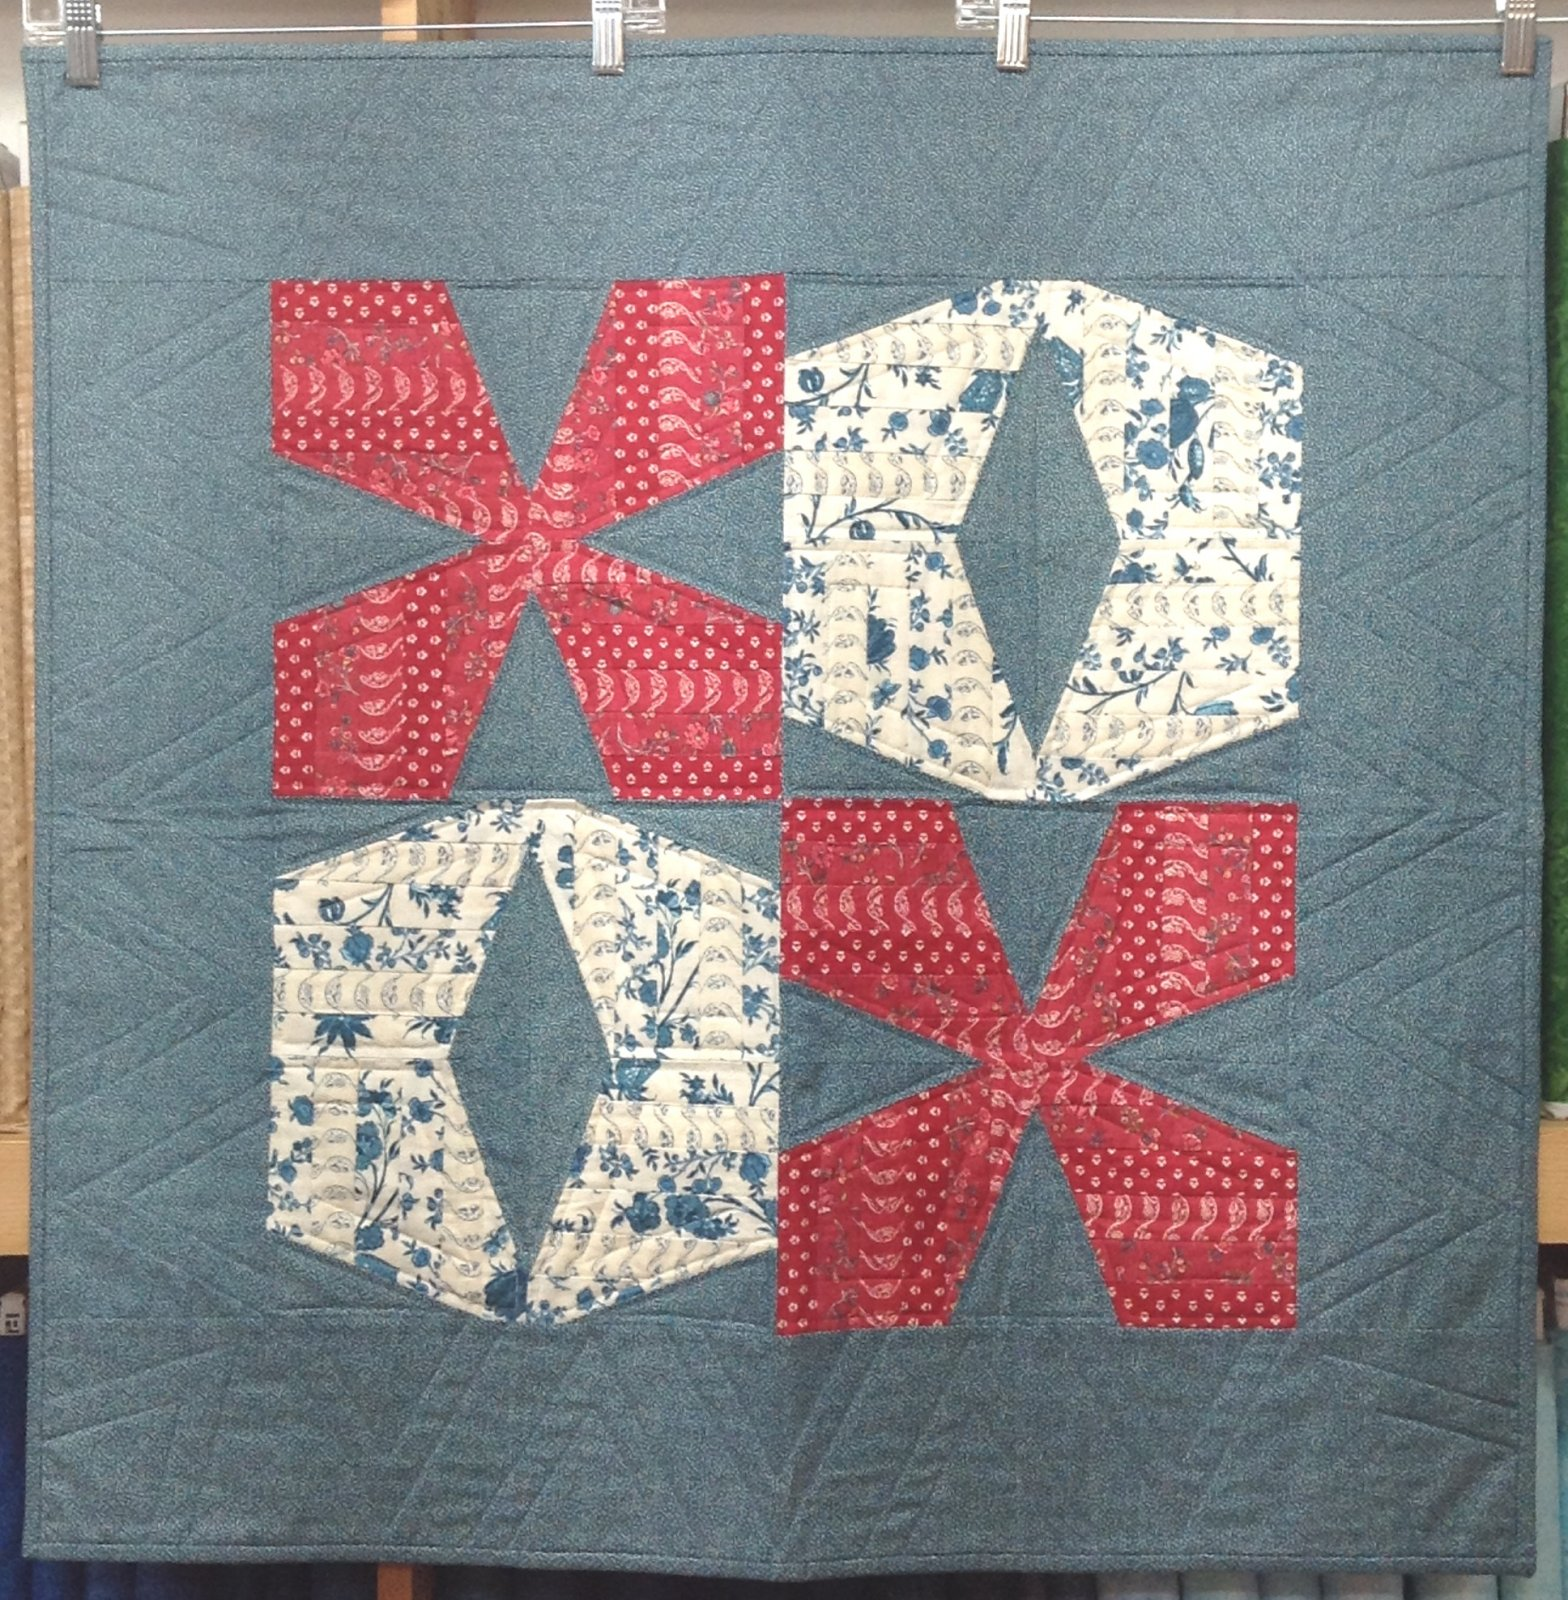 Quilt / Wall Hanging for Sale: Modern Love XO - measures 33 x 33